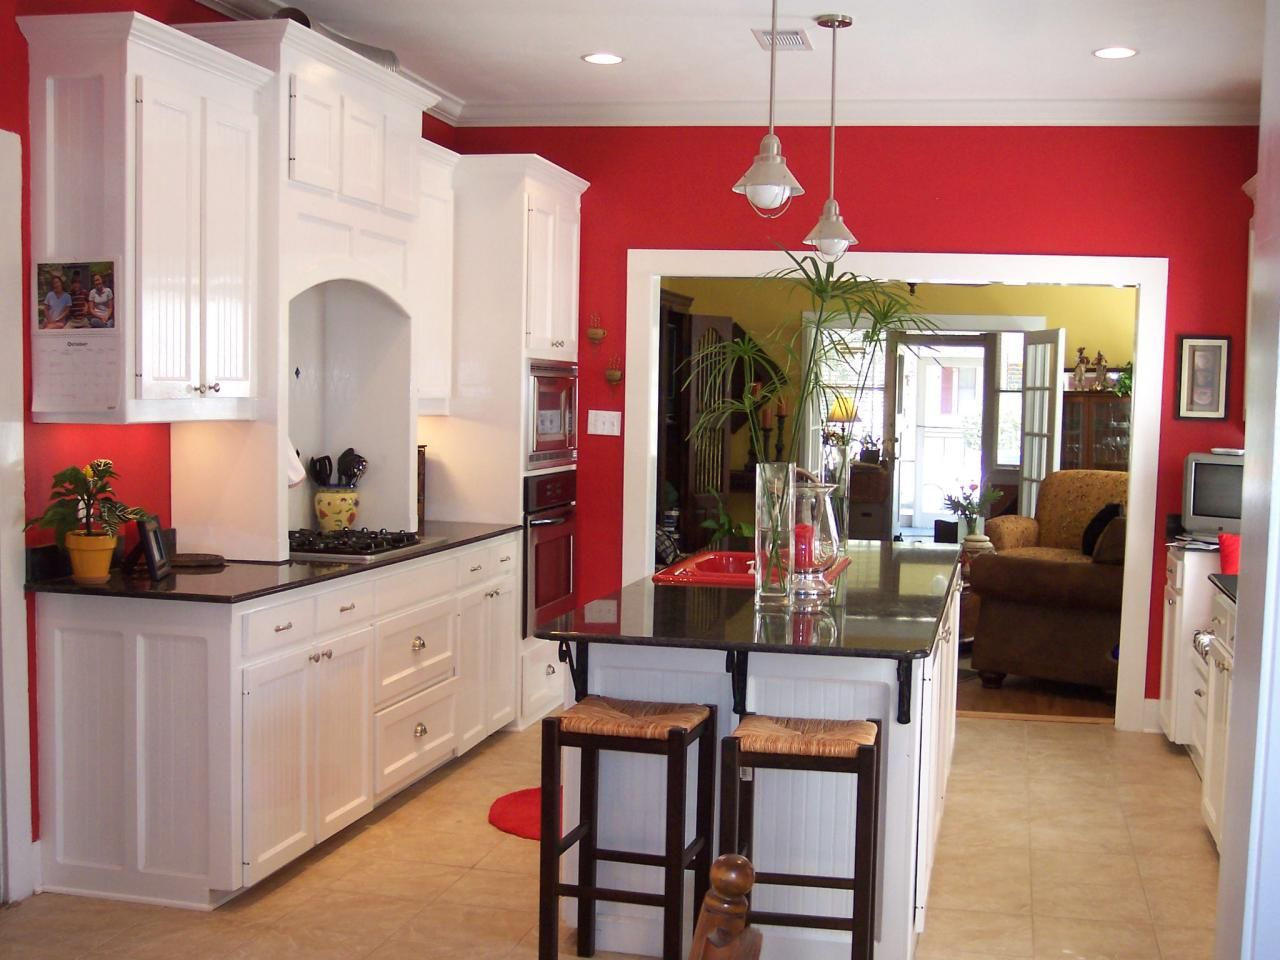 What Colors To Paint A Kitchen Red Kitchen Walls Kitchen Design Color Red Kitchen Decor